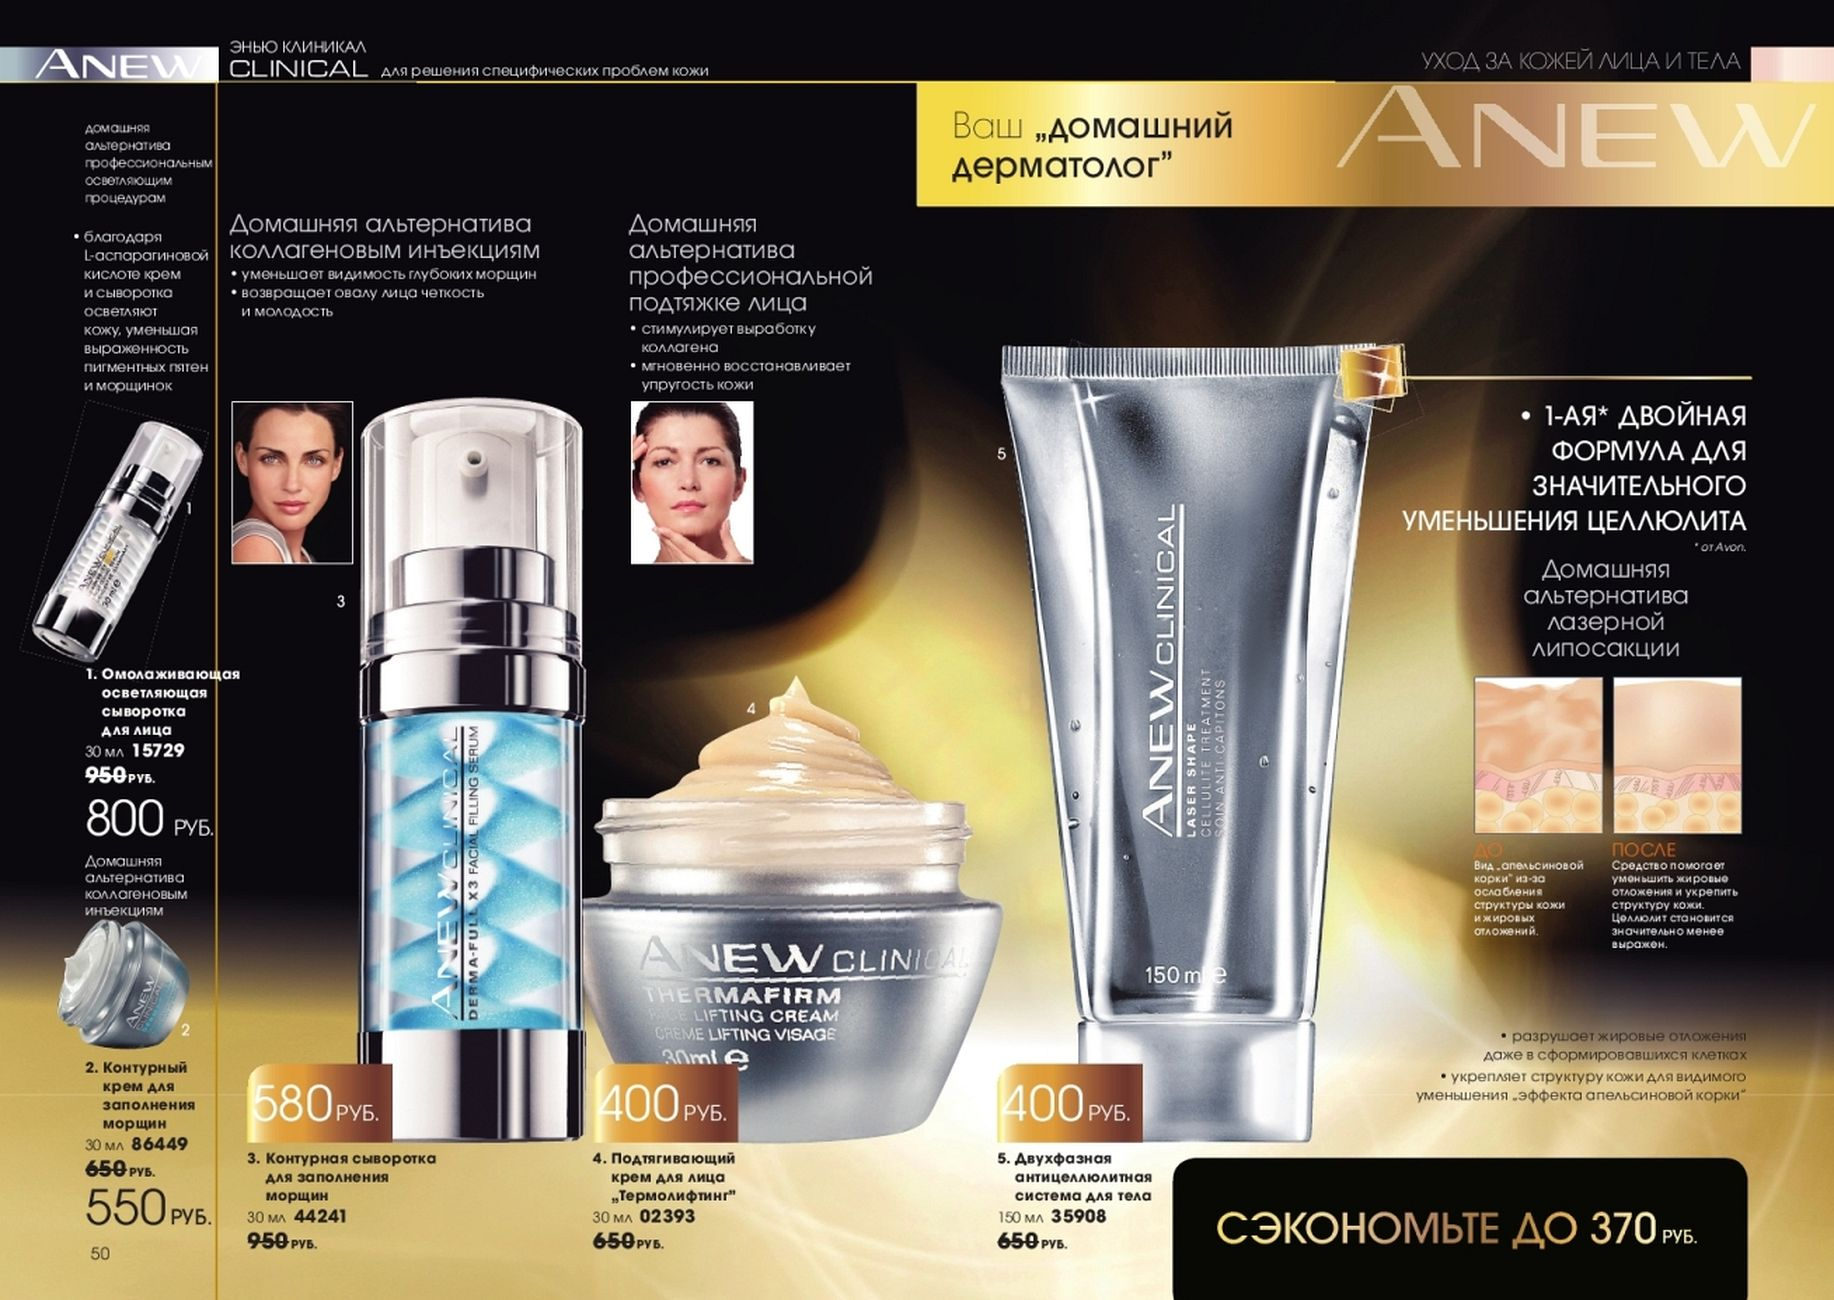 case study for avon Avon implements the door-to-door selling type of direct selling avon uses freelance salespeople or agents to visit people in their own homes and to demonstrate and explain the use of a range of beauty products.